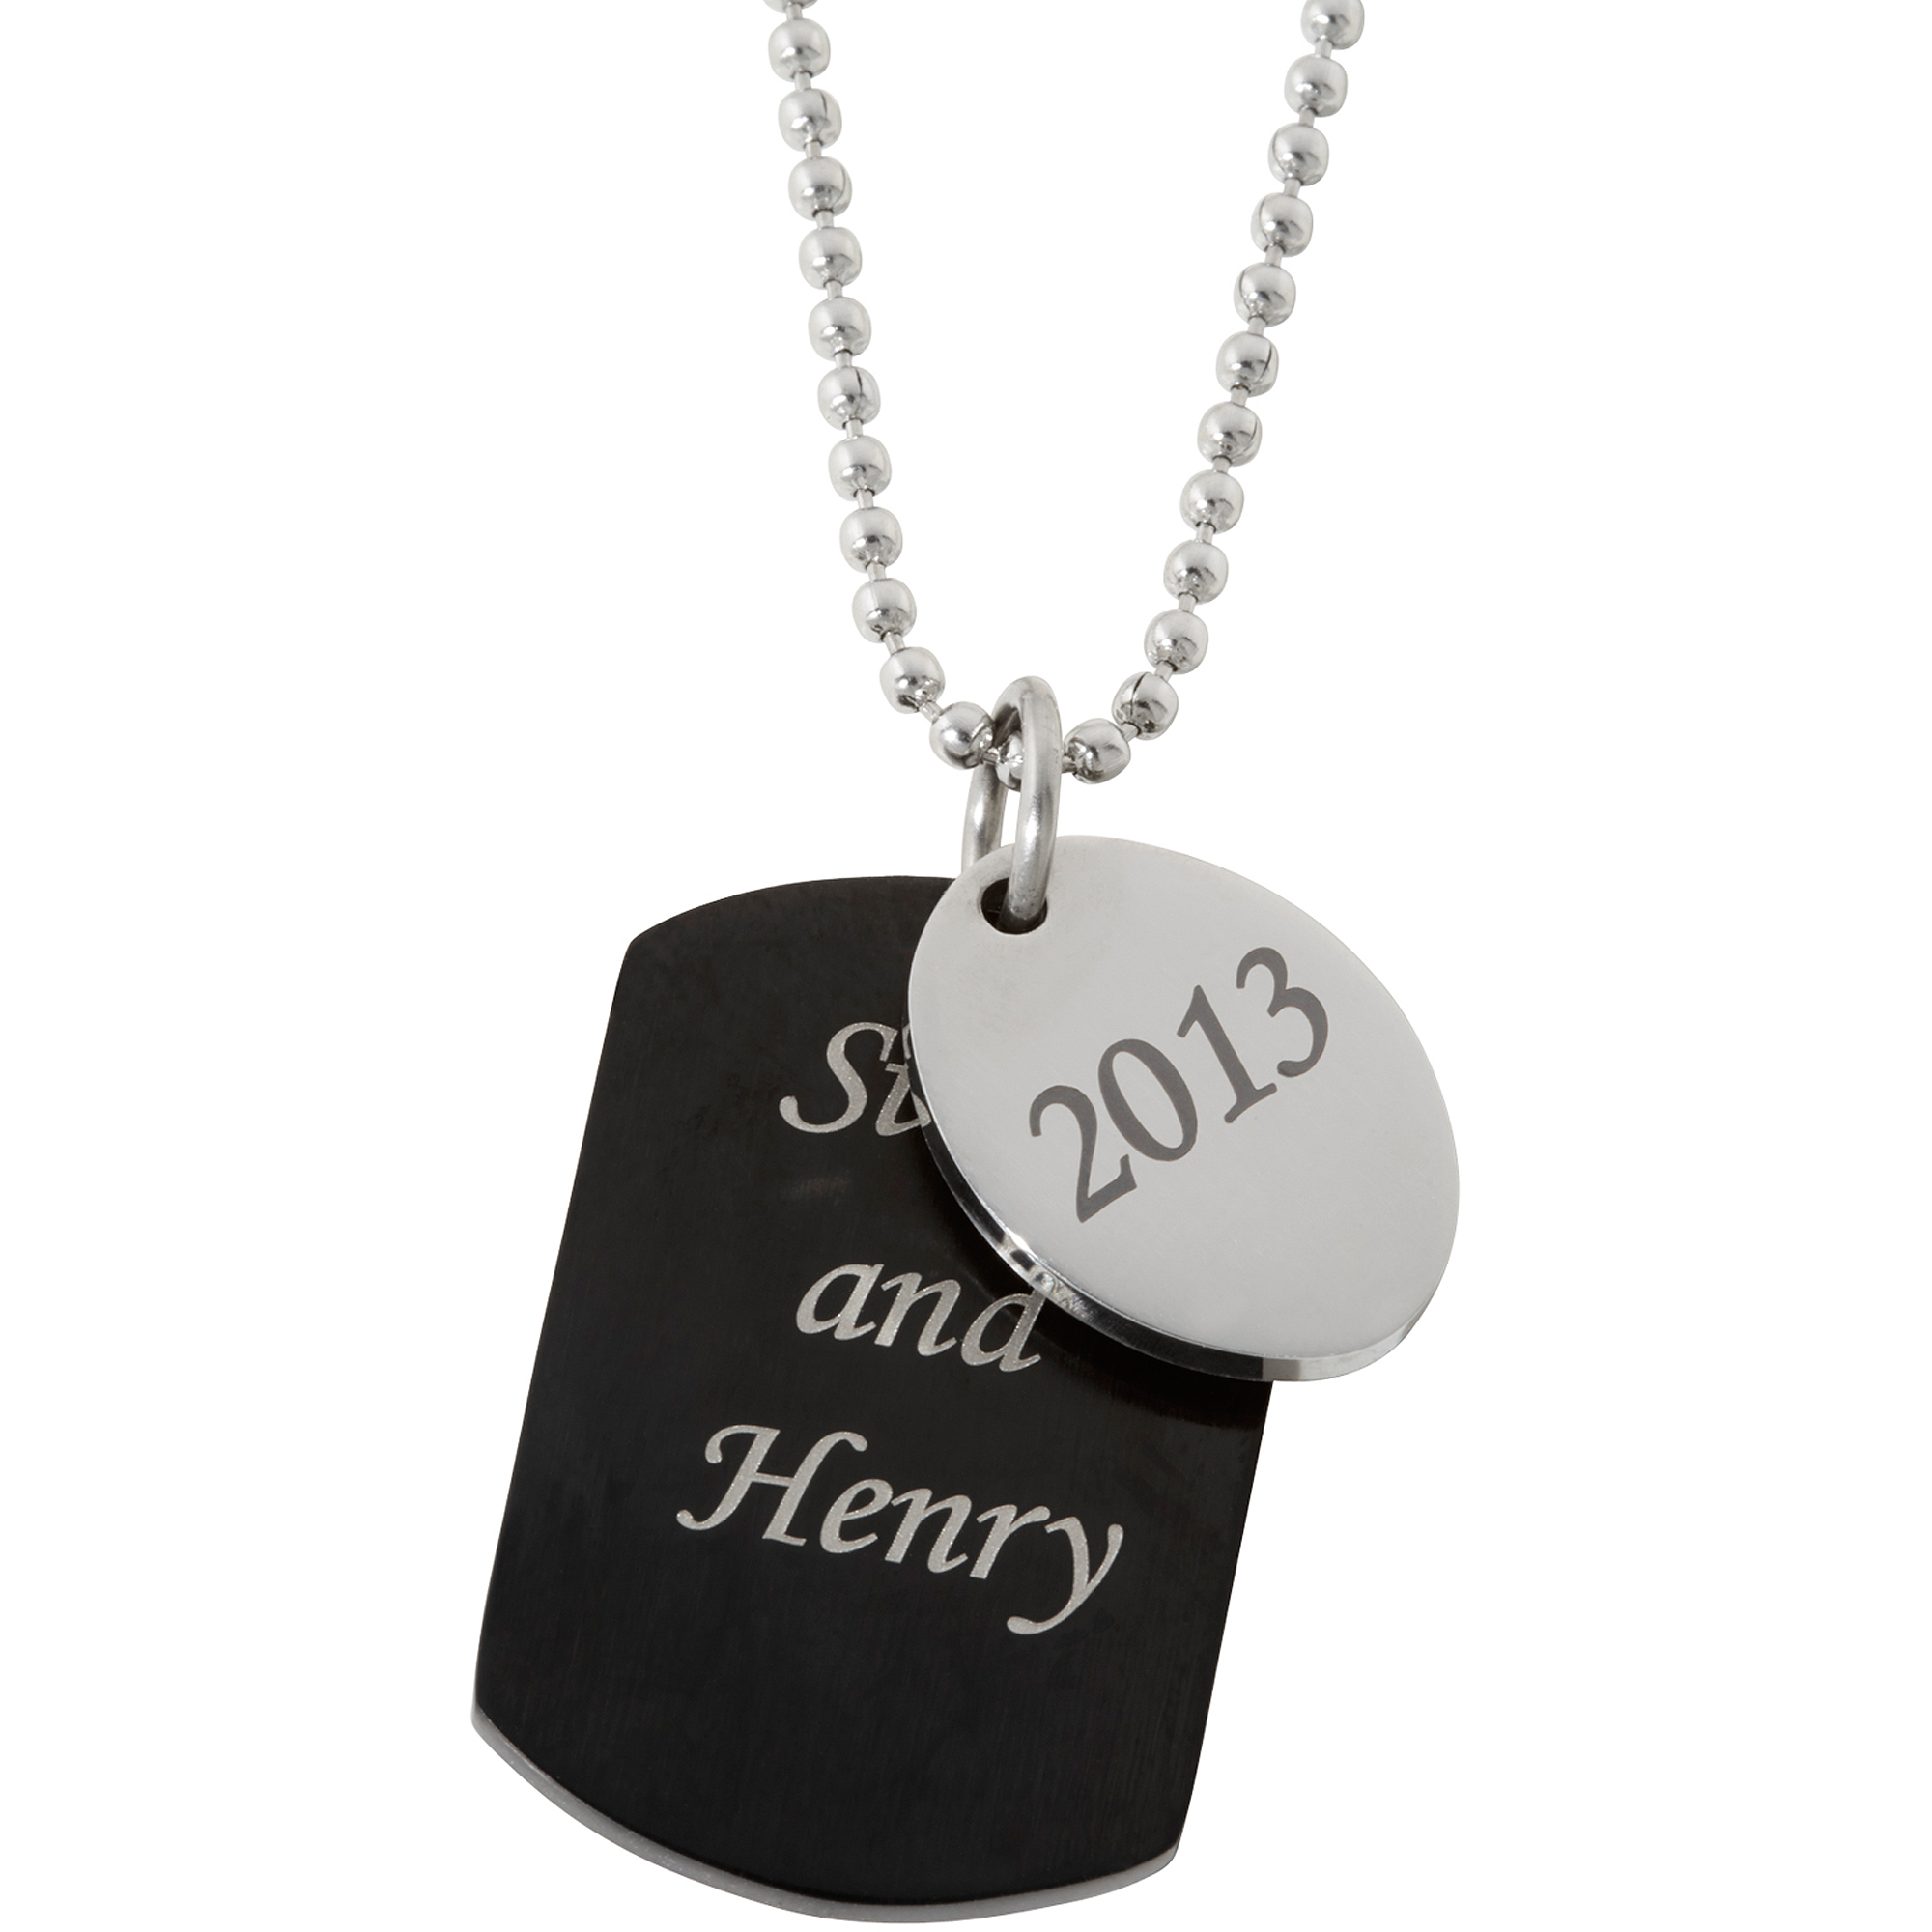 Personalized Men's Black Stainless Steel Tag and Oval Dangle Pendant